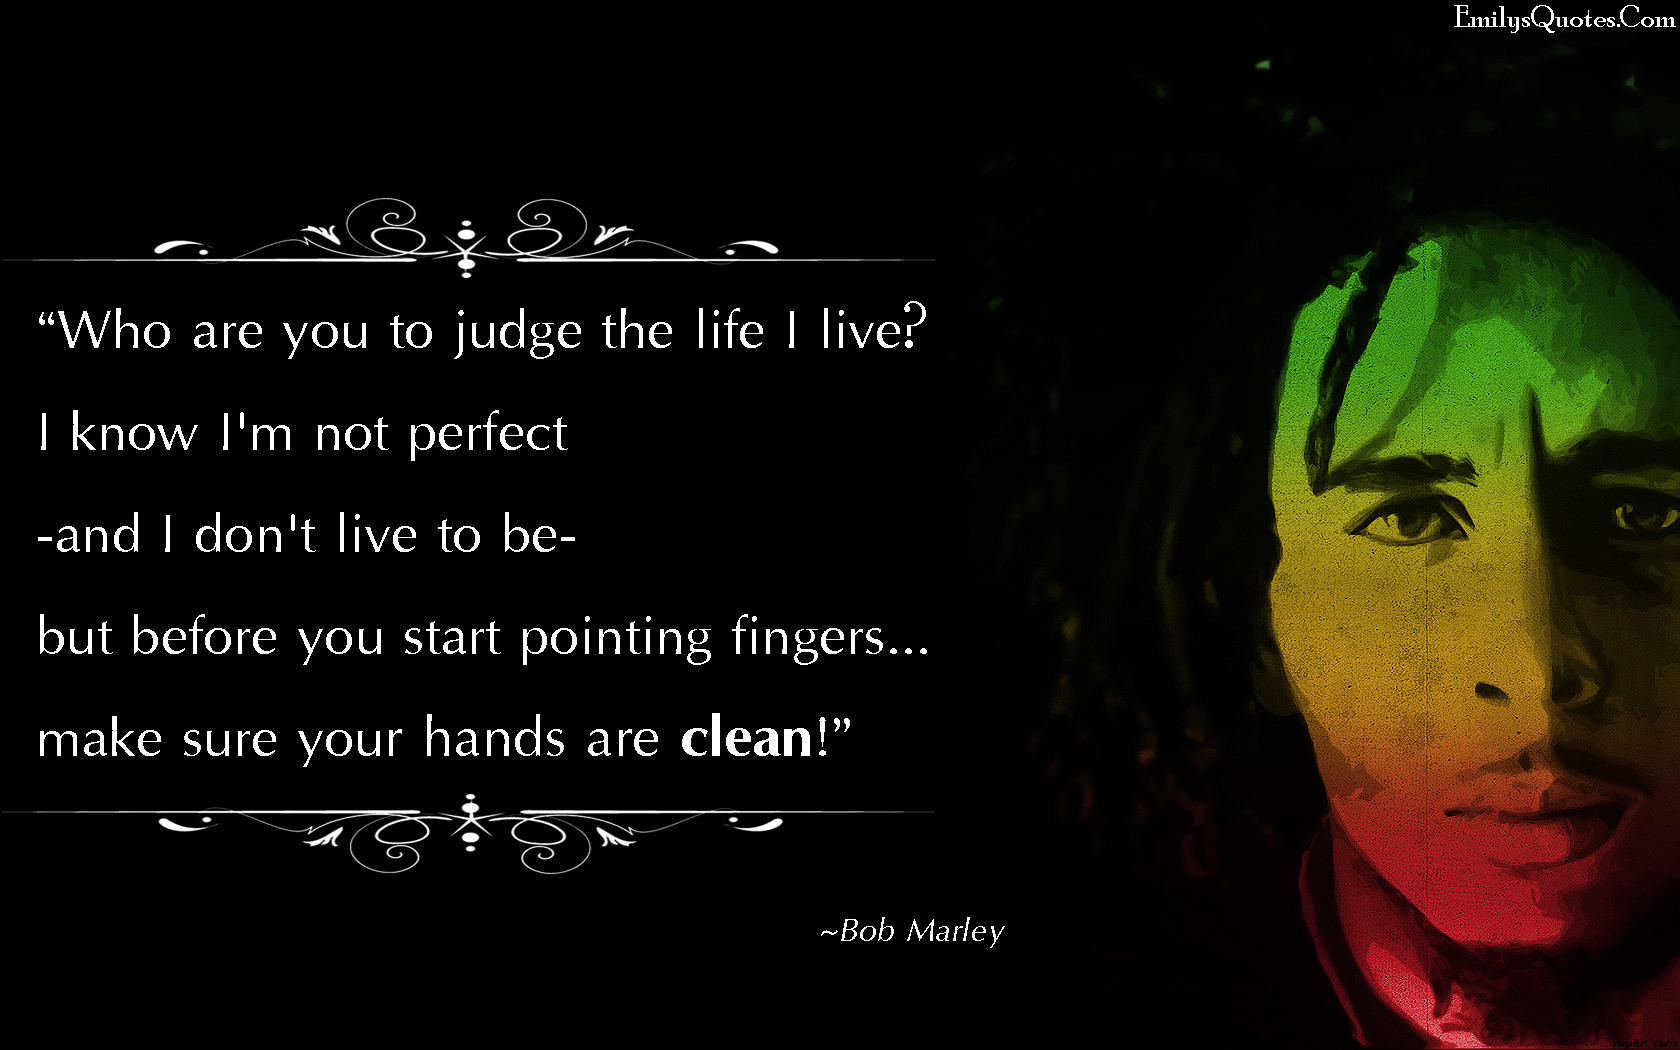 EmilysQuotes.Com - amazing, great, judge, life, perfect, pointing fingers, relationship, Bob Marley quote